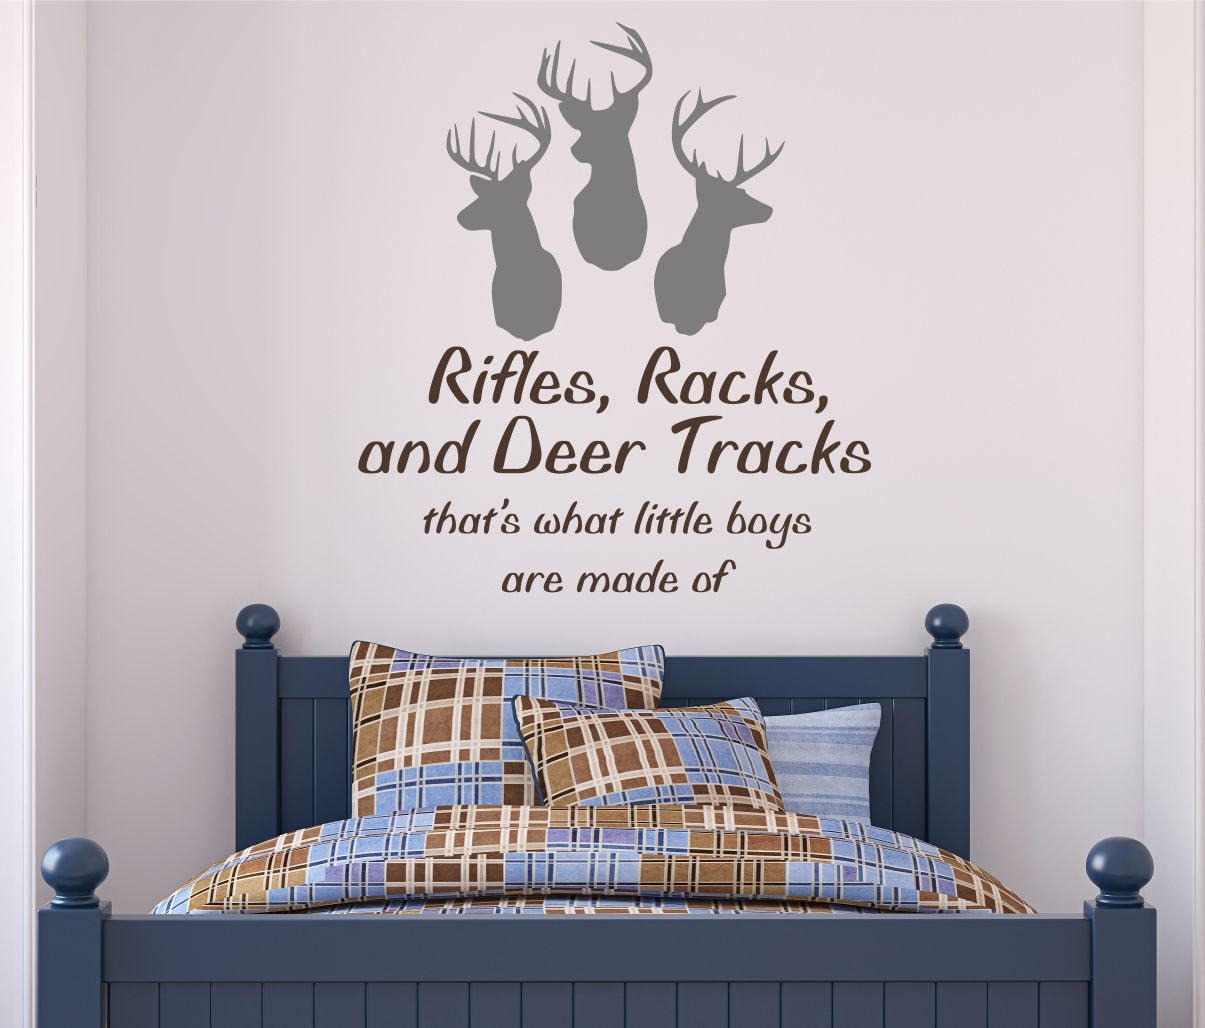 Rifles racks and deer tracks decal by decor designs decals hunting rifles racks and deer tracks decal by decor designs decals hunting decal amipublicfo Images